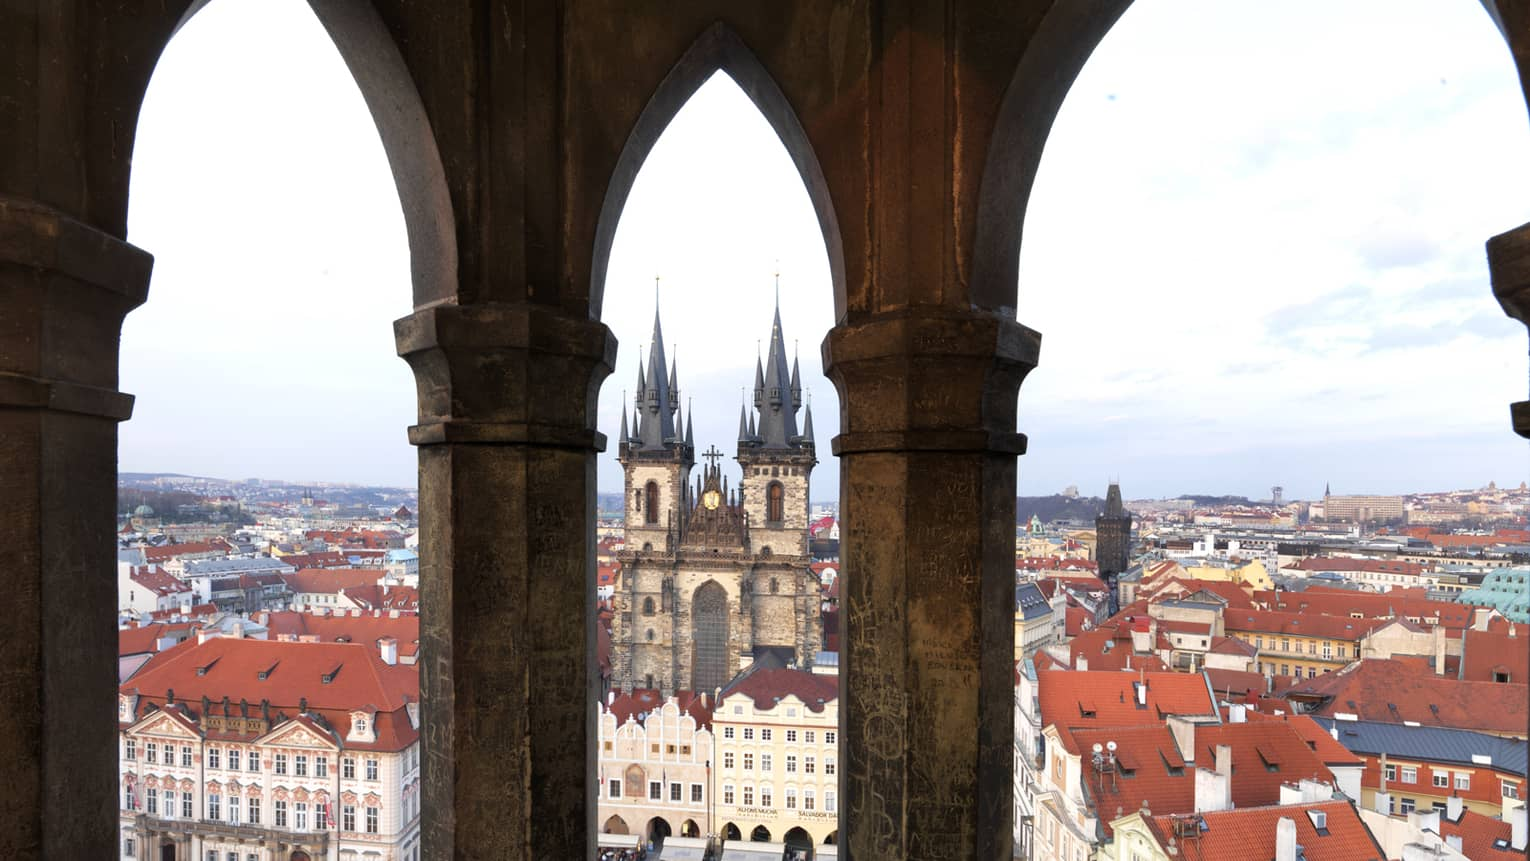 Old Town Prague, view past historic posts over city rooftops